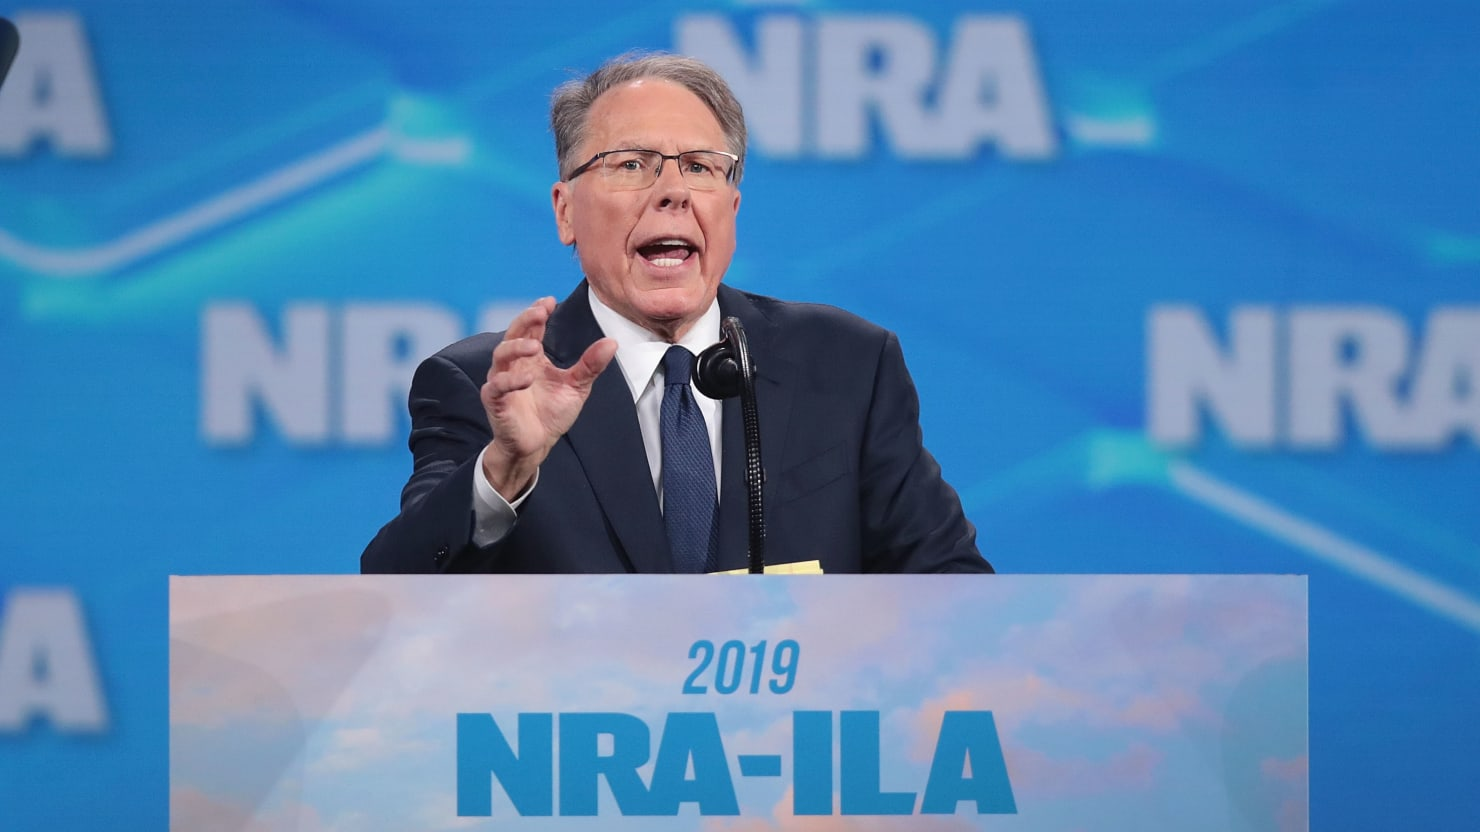 Ad Agency Fires Back at NRA With $50 Million Counterclaim